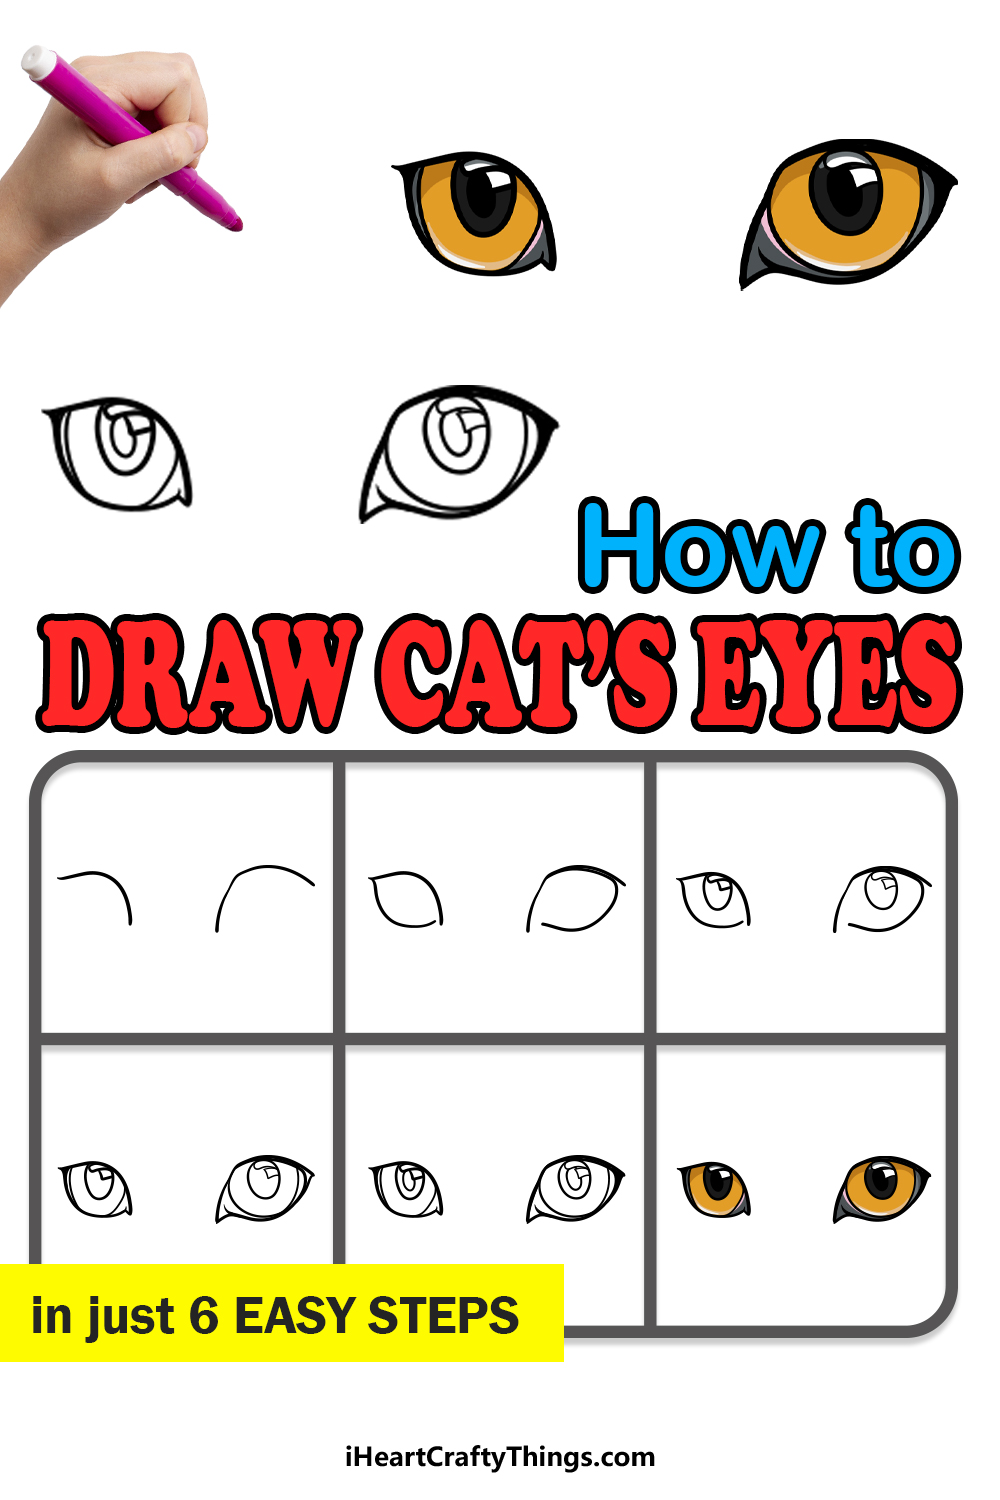 how to draw cat eyes in 6 easy steps